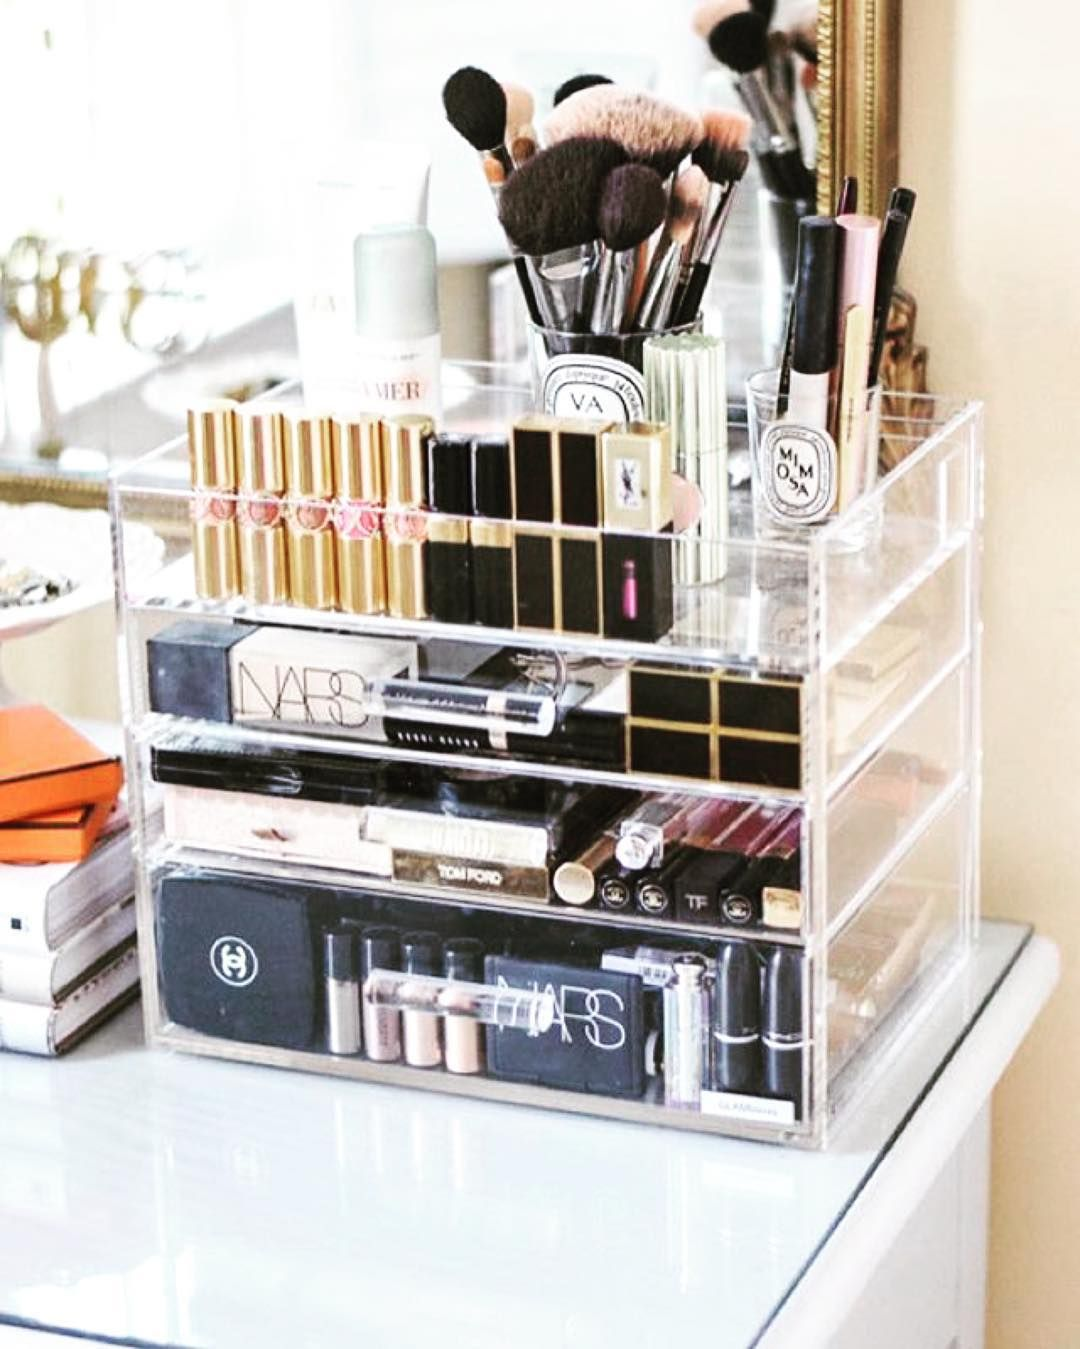 "The most GLAM way to organize your jewelry, accessories, makeup and beauty products!!!❤️""If you don't see it, you won't use it!""❤️ ~ 👻 glamboxes"